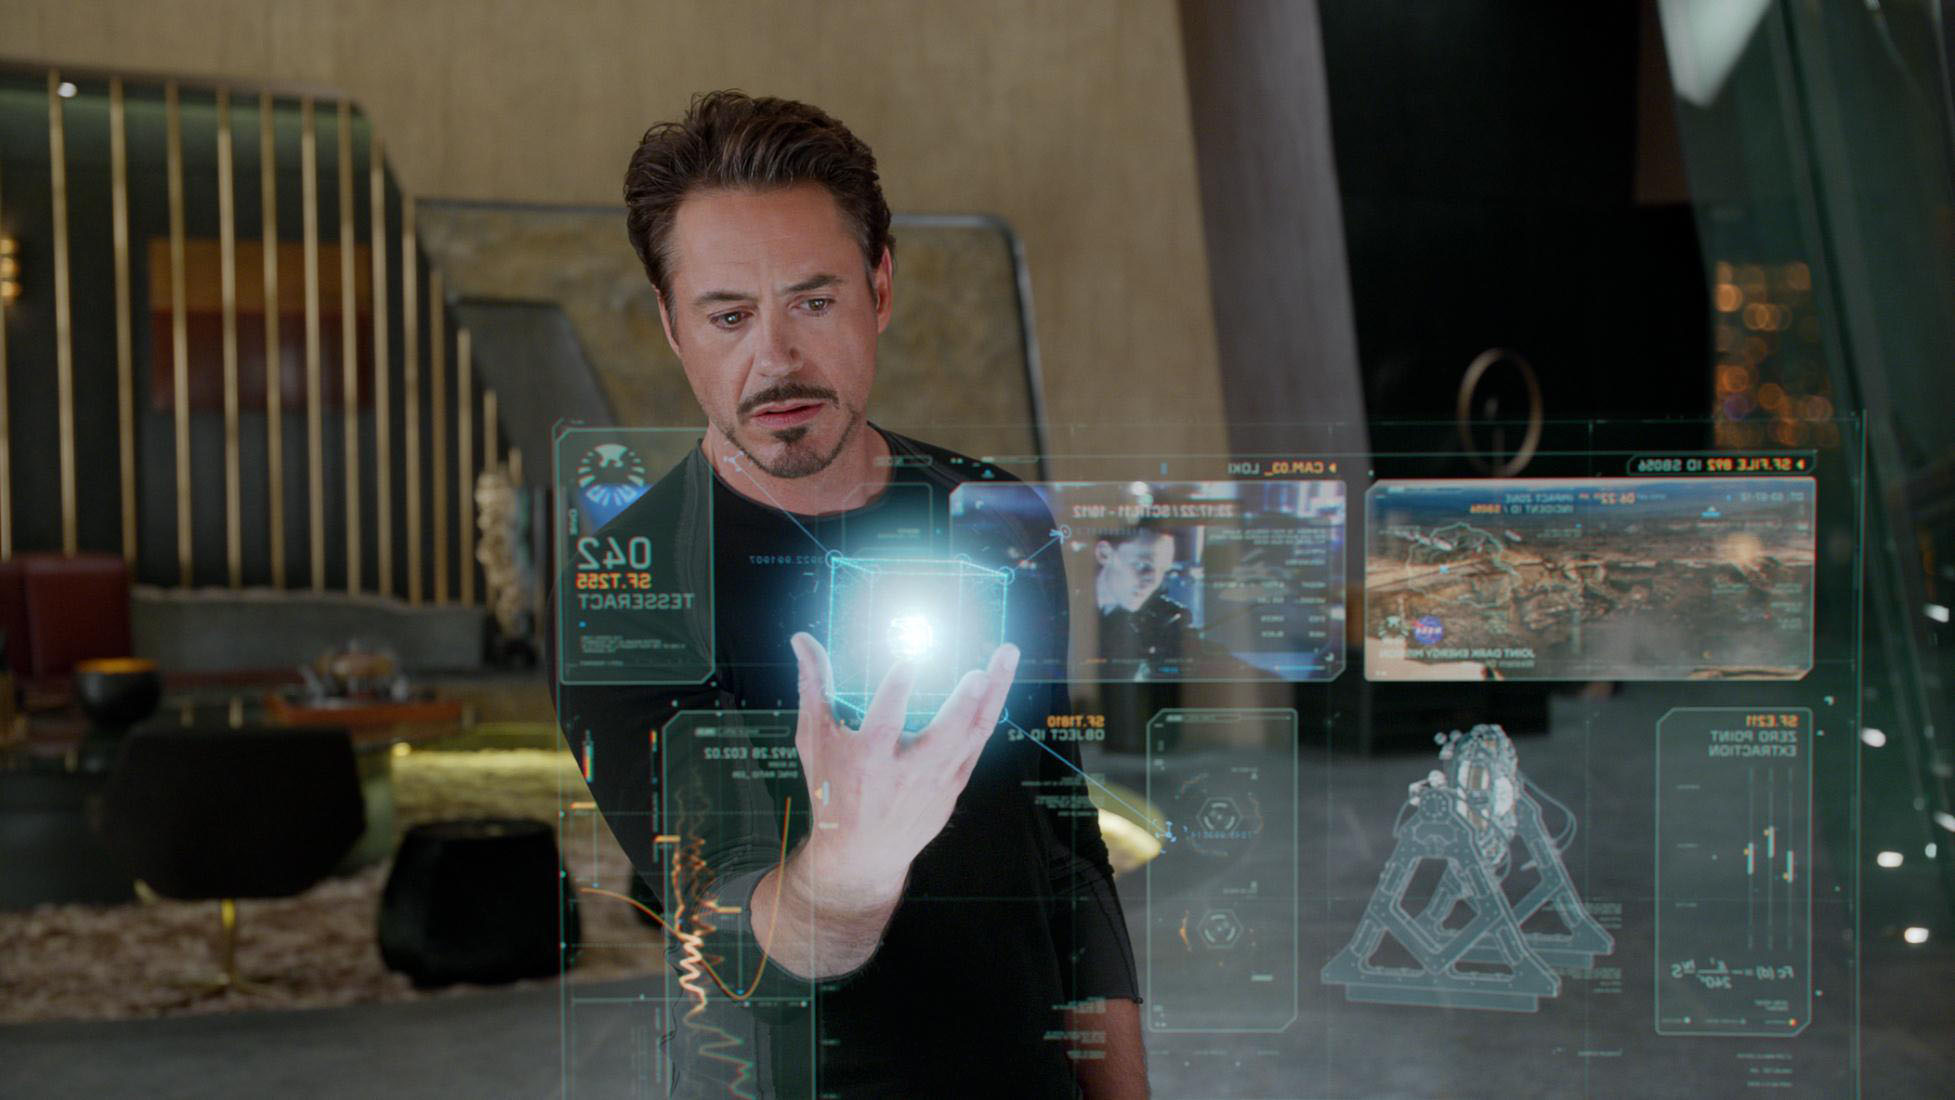 Robert Downey Jr., Scarlett Johansson back to save the world in 'The Avengers'